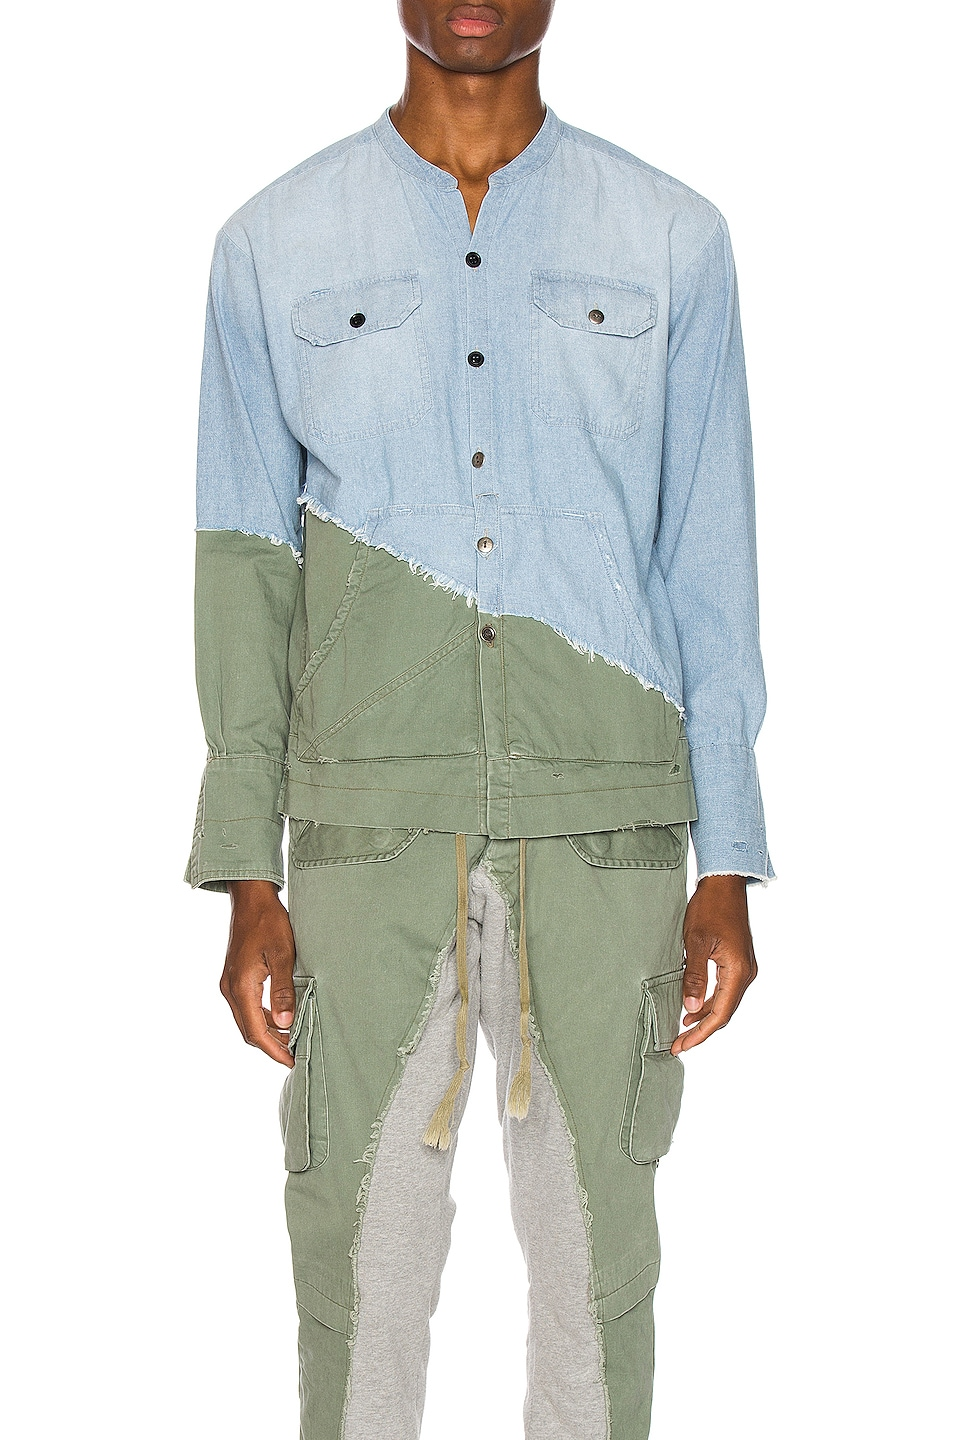 Image 1 of Greg Lauren Army Studio Shirt in Light Blue & Army